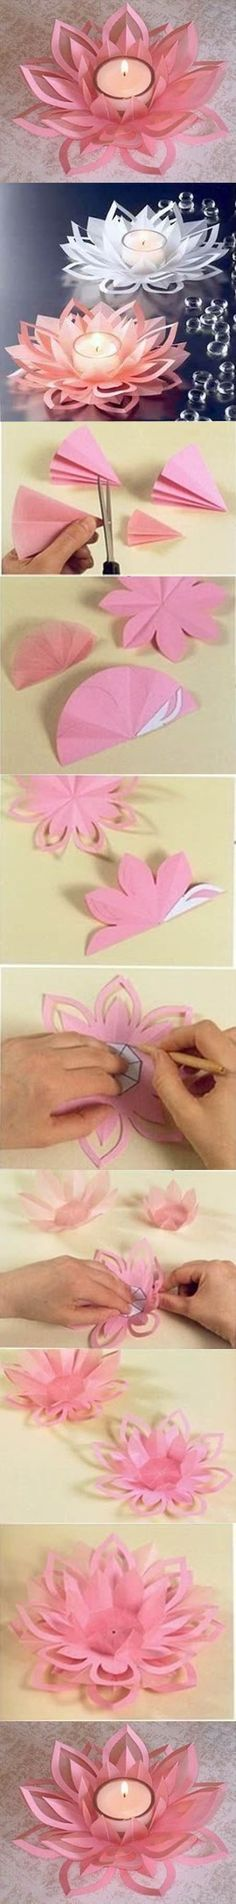 DIY Paper Lotus Candlestick | iCreativeIdeas.com Like Us on Facebook == https://www.facebook.com/icreativeideas